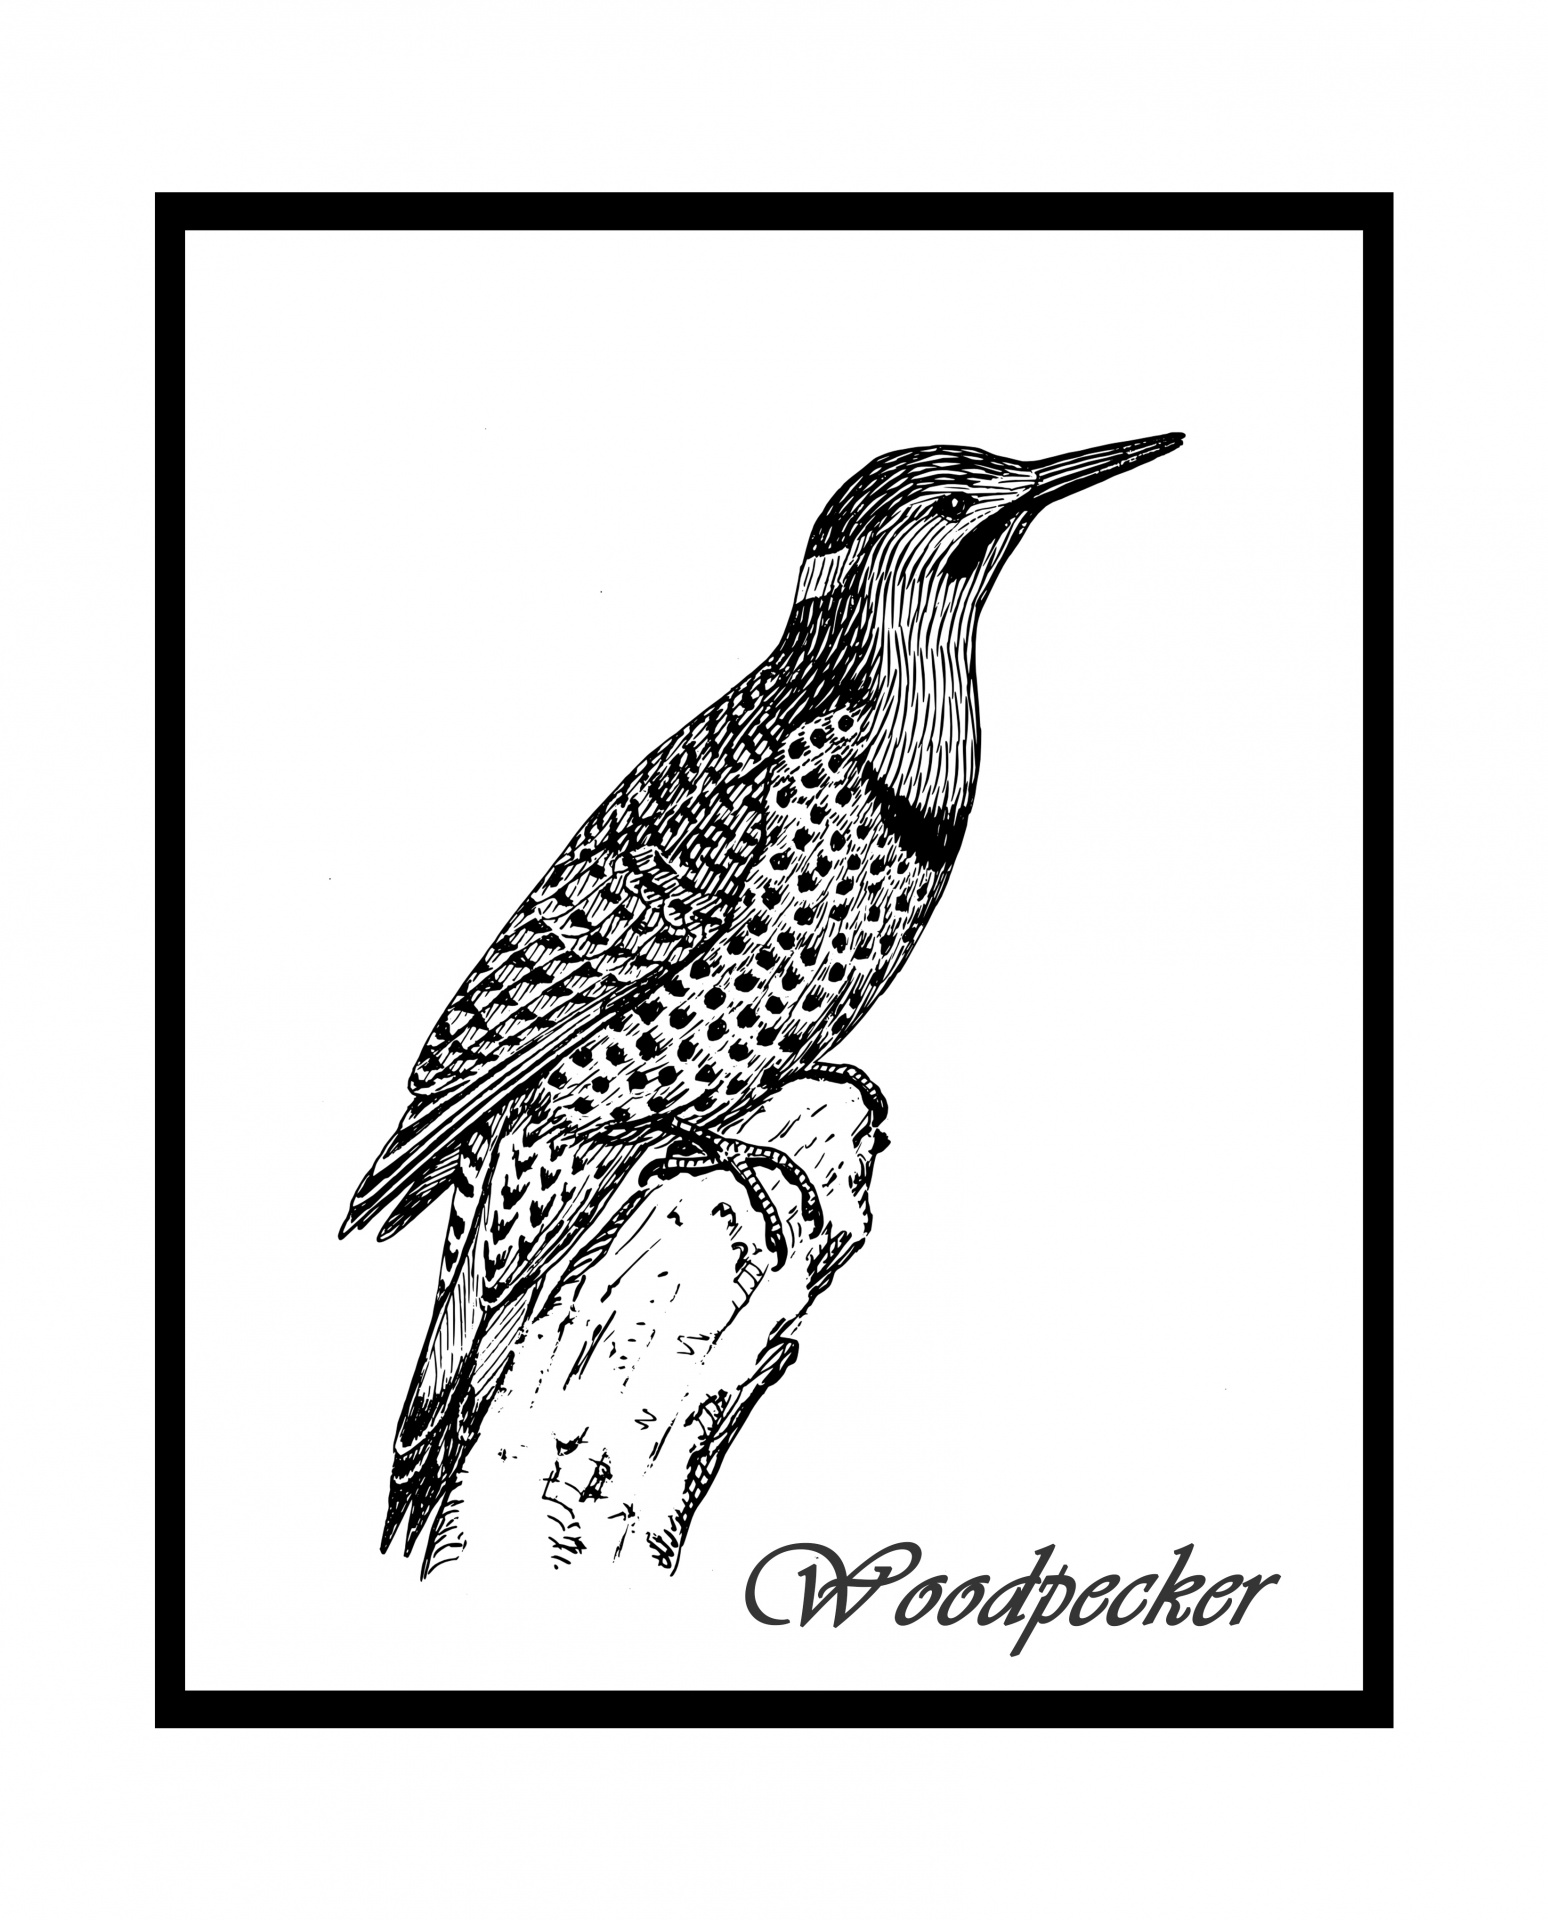 Woodpecker Illustration Free Stock Photo